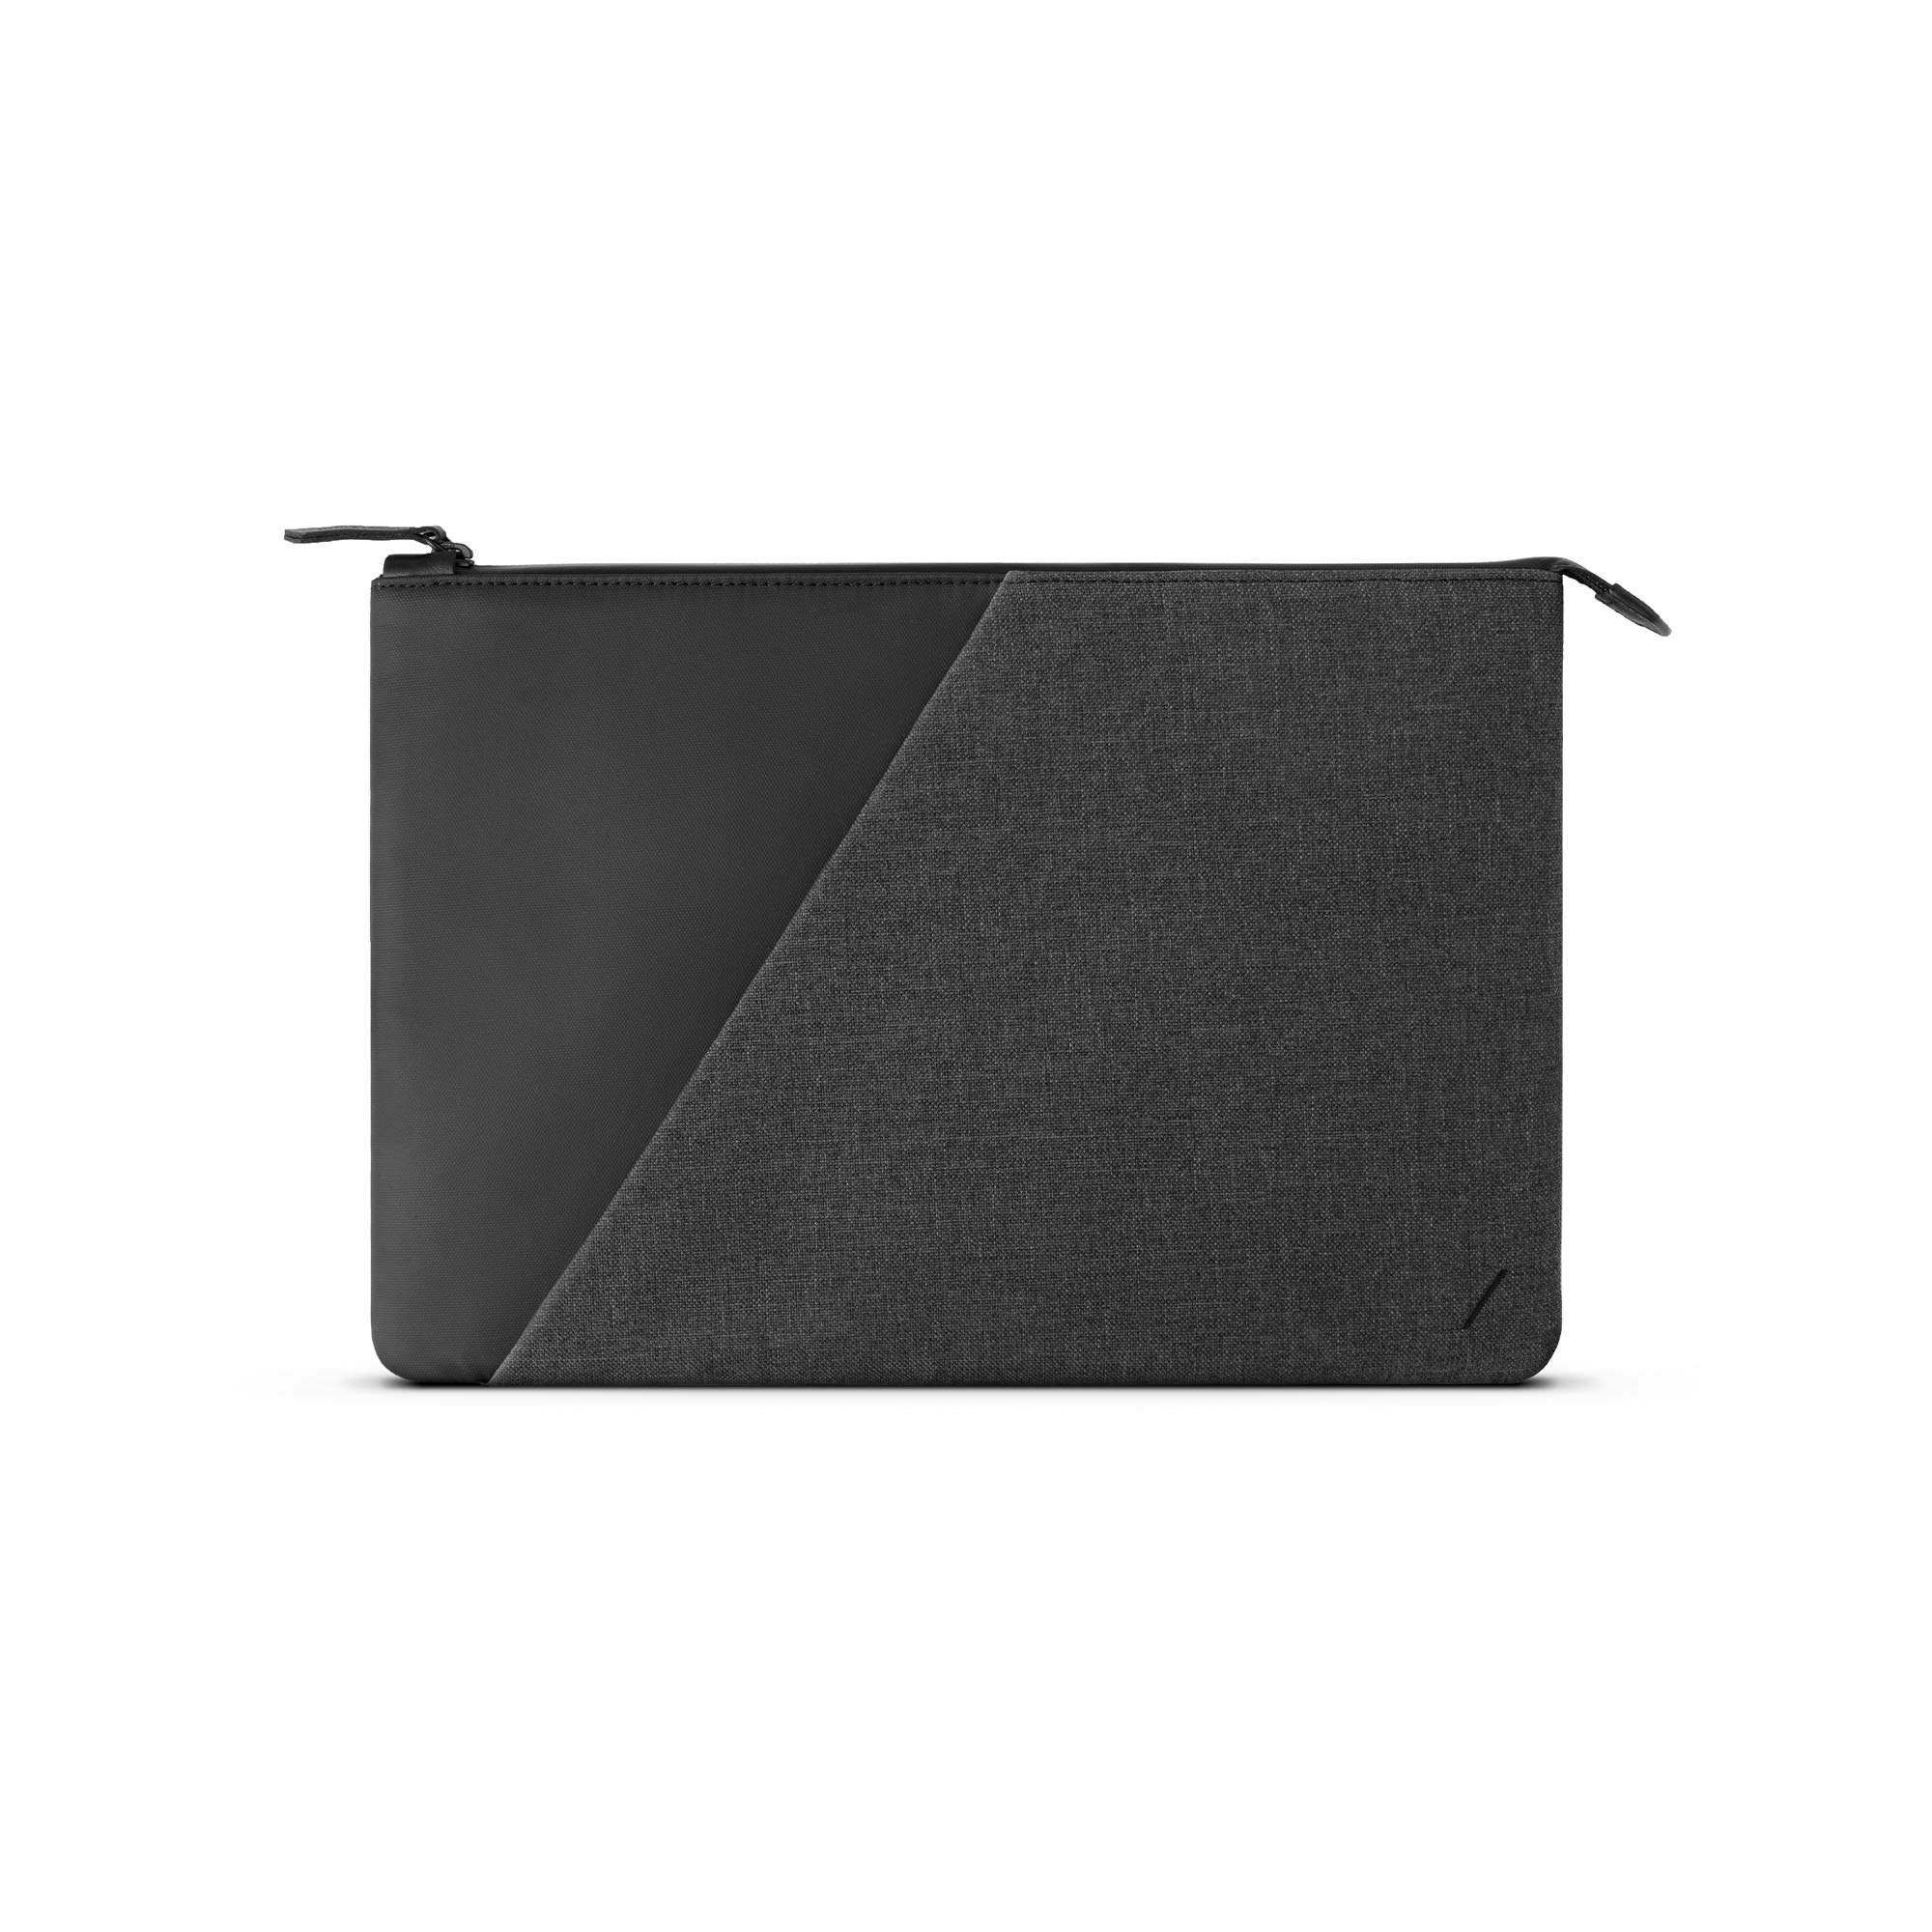 Native Union Stow 13'' Laptop Sleeve - Sleek & Slim 360-Degree Protection with Exterior Pocket Compatible with 13'' MacBook (Slate)